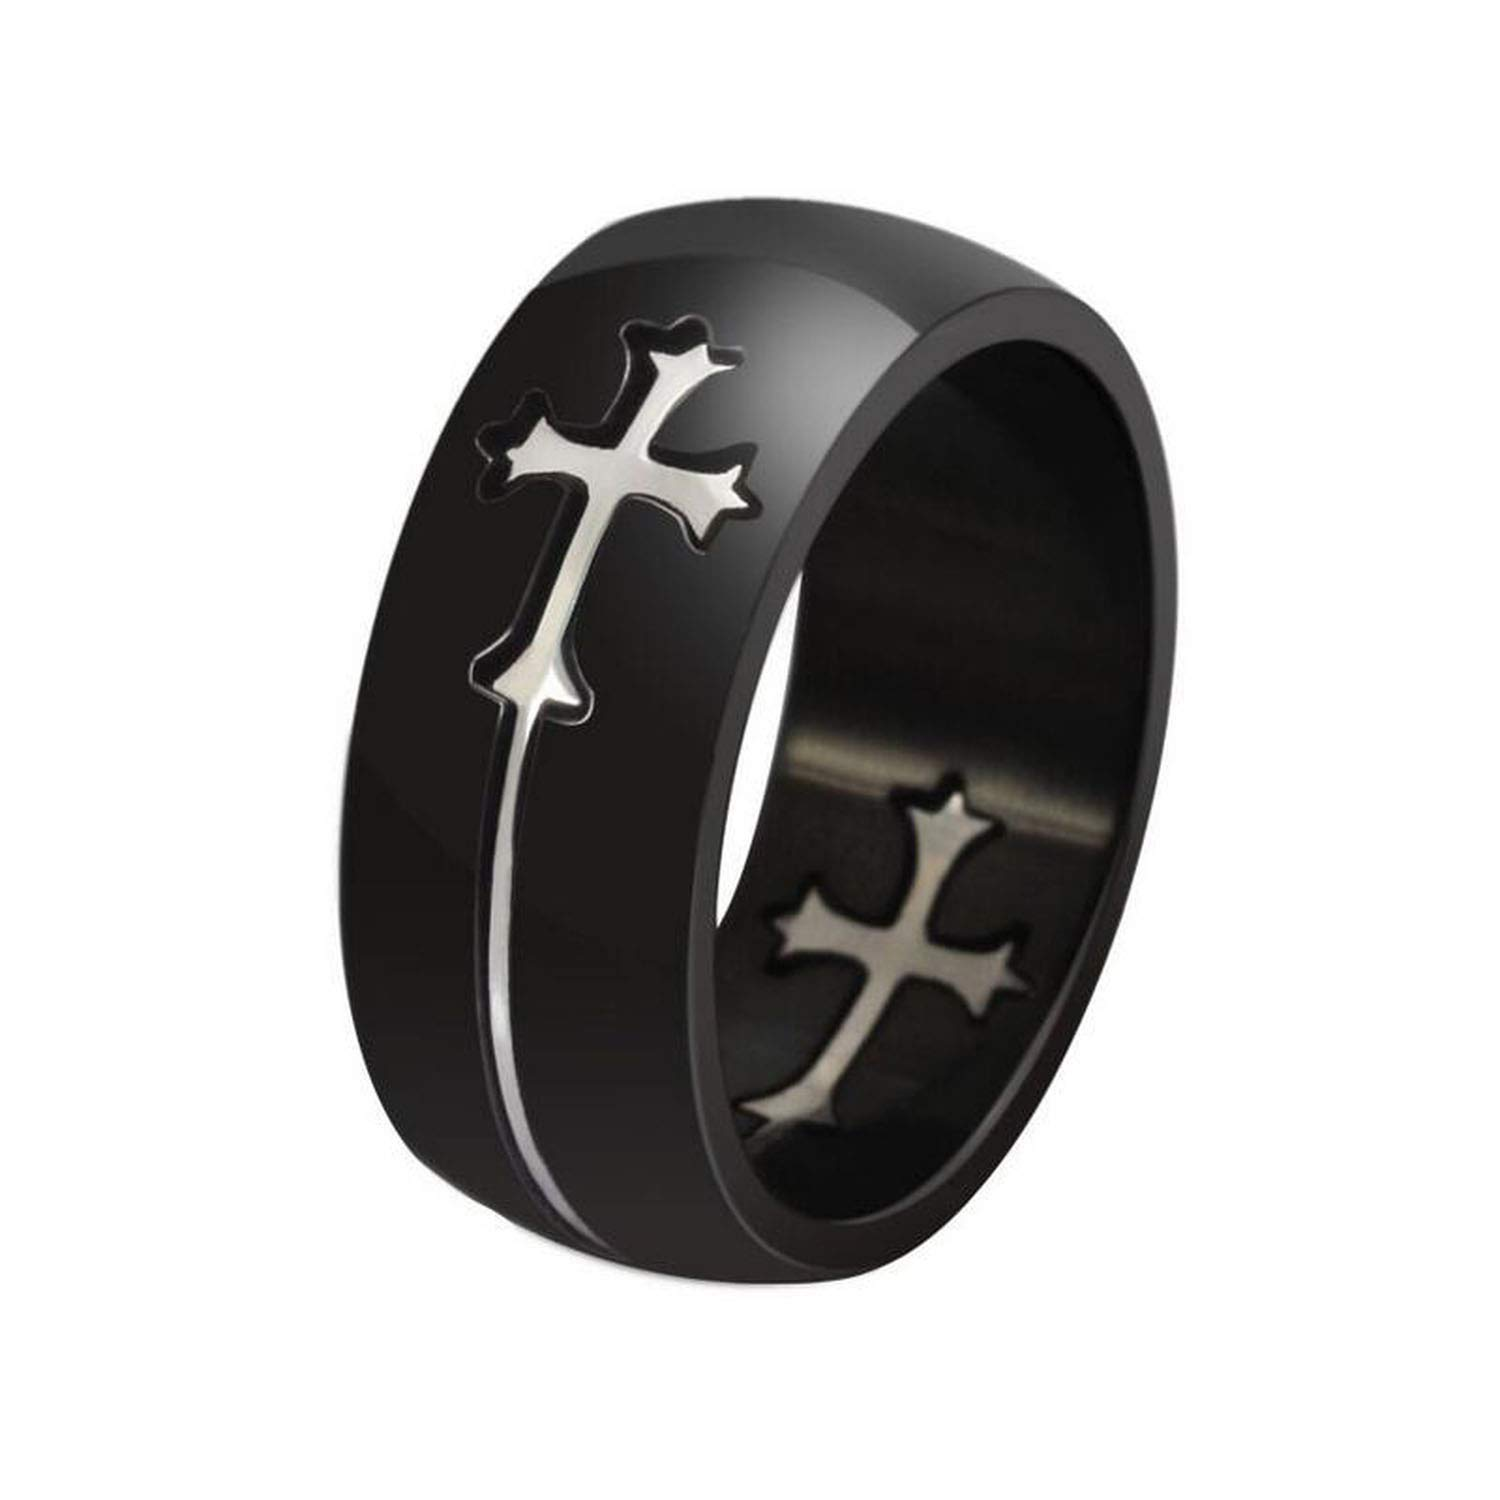 Stainless Steel 2 Color Female Gender Symbol Flat Band Ring